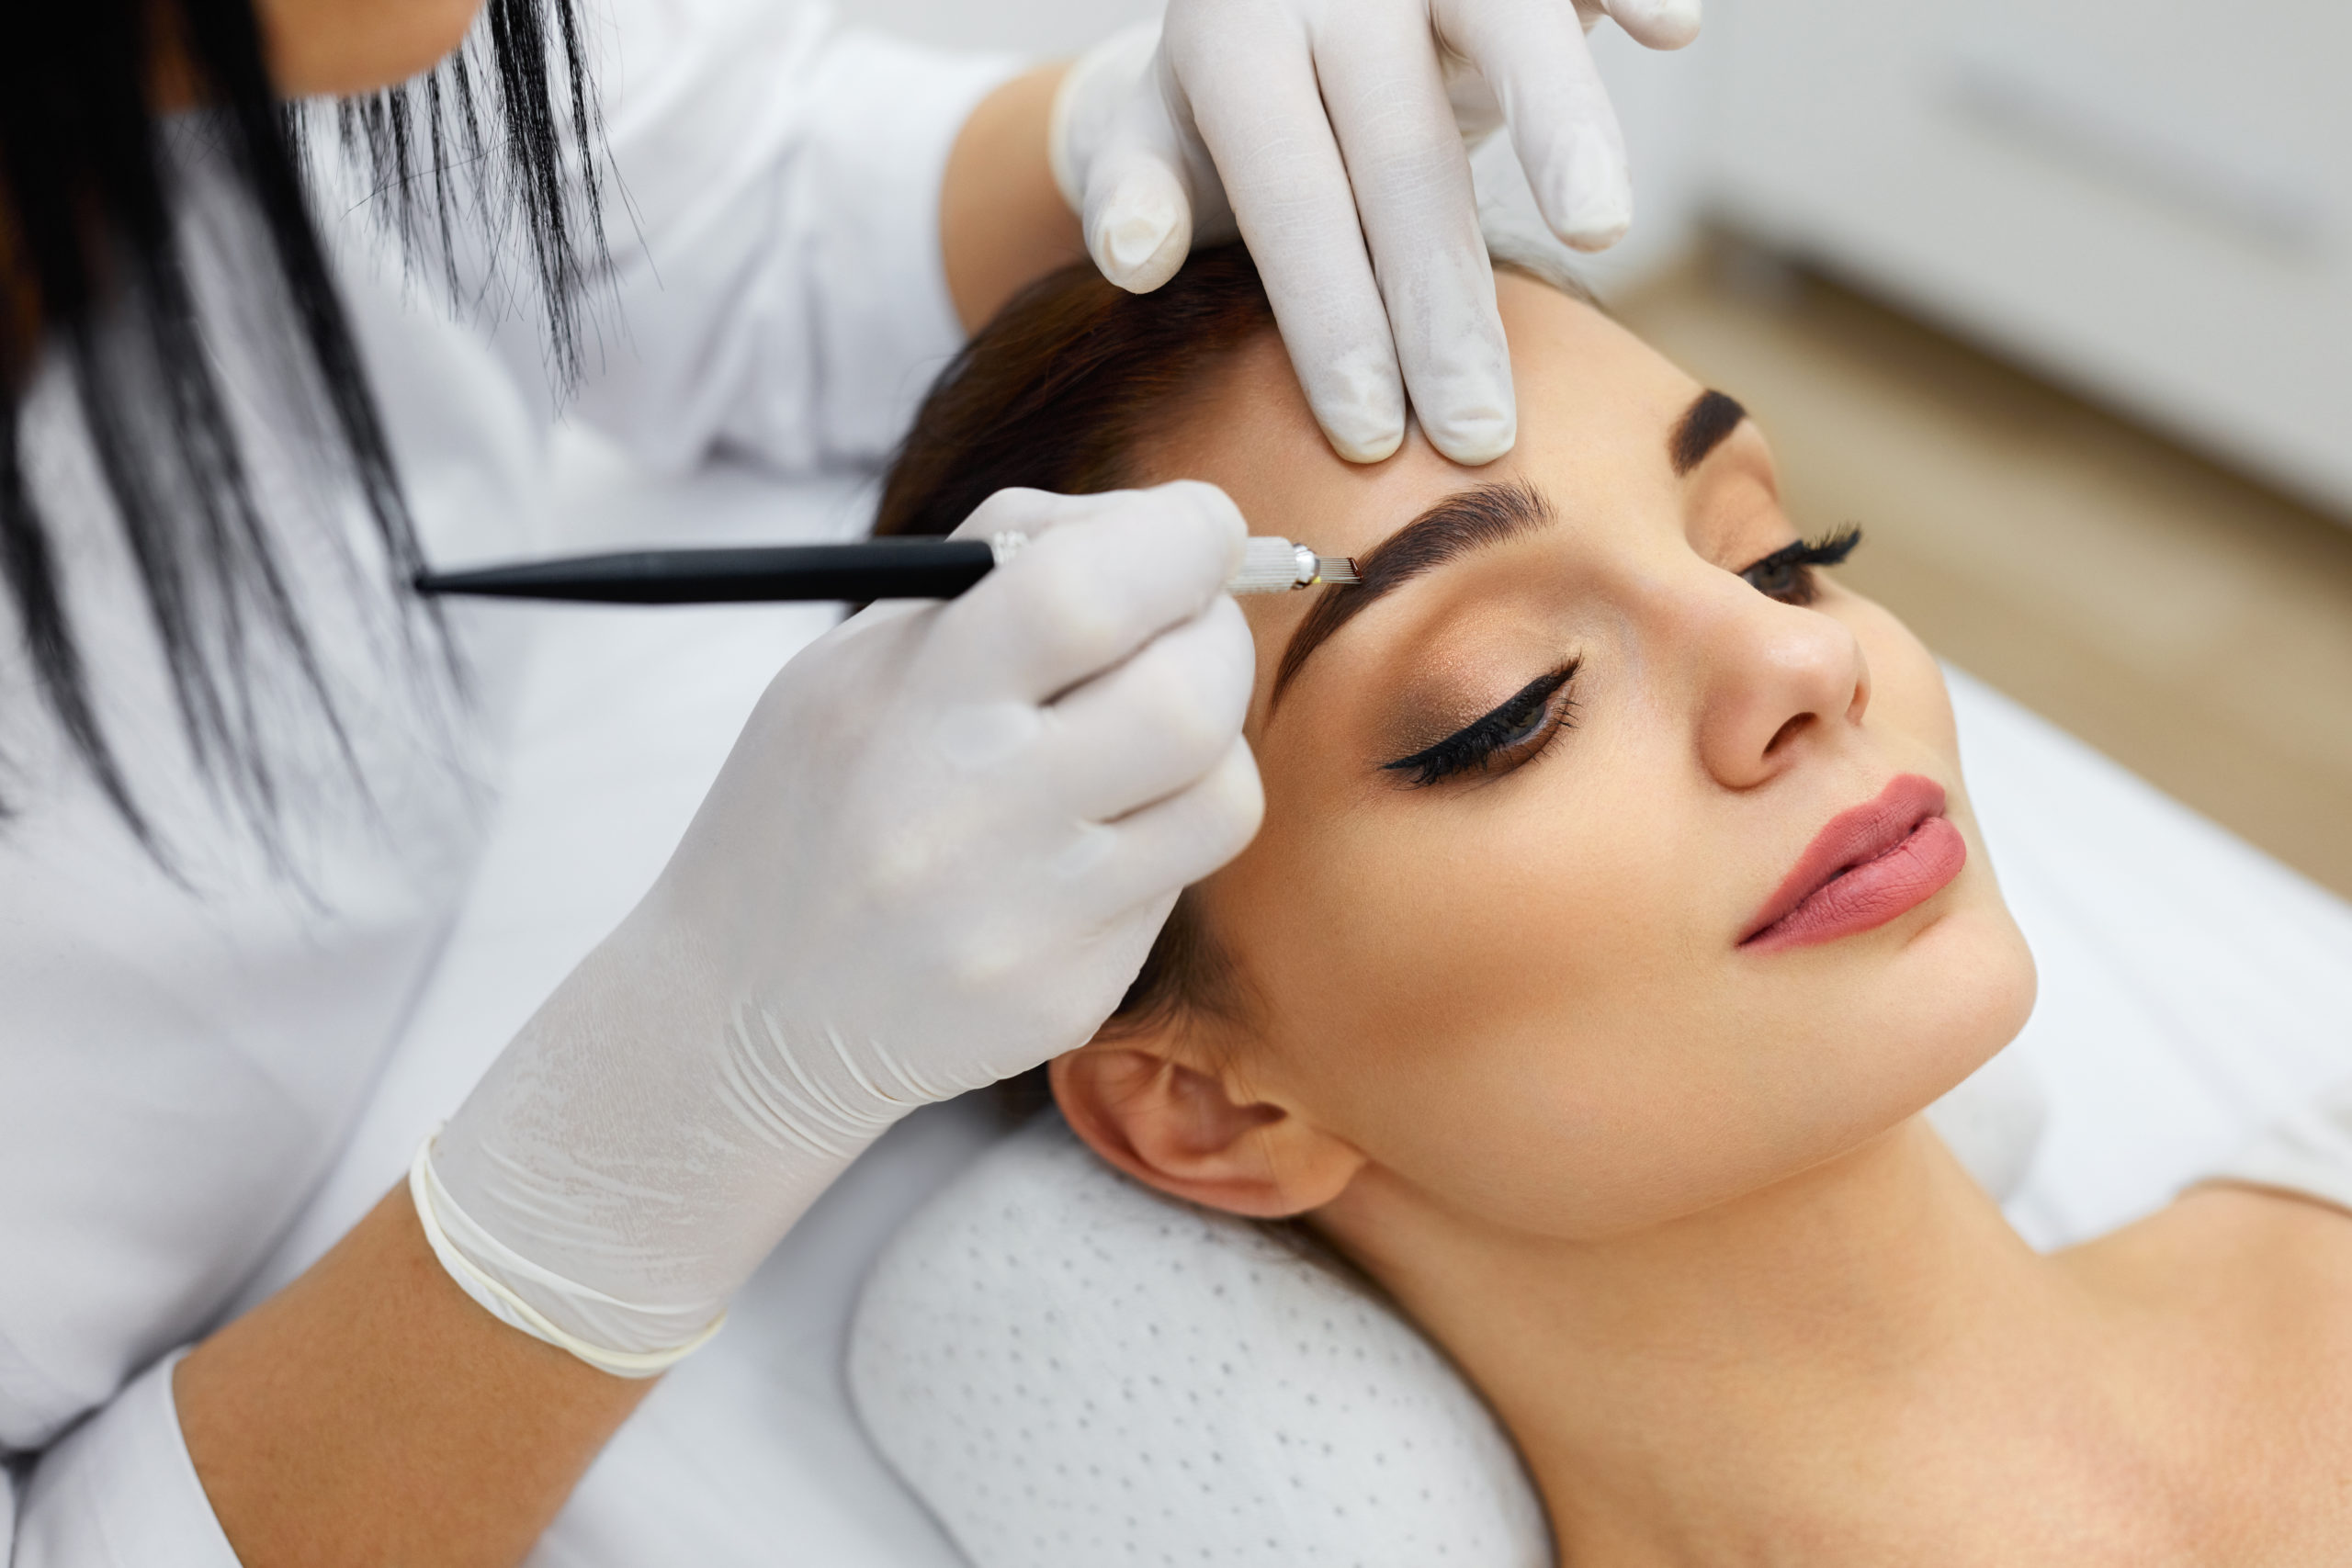 Why Is Client Consent Important For Permanent Makeup?